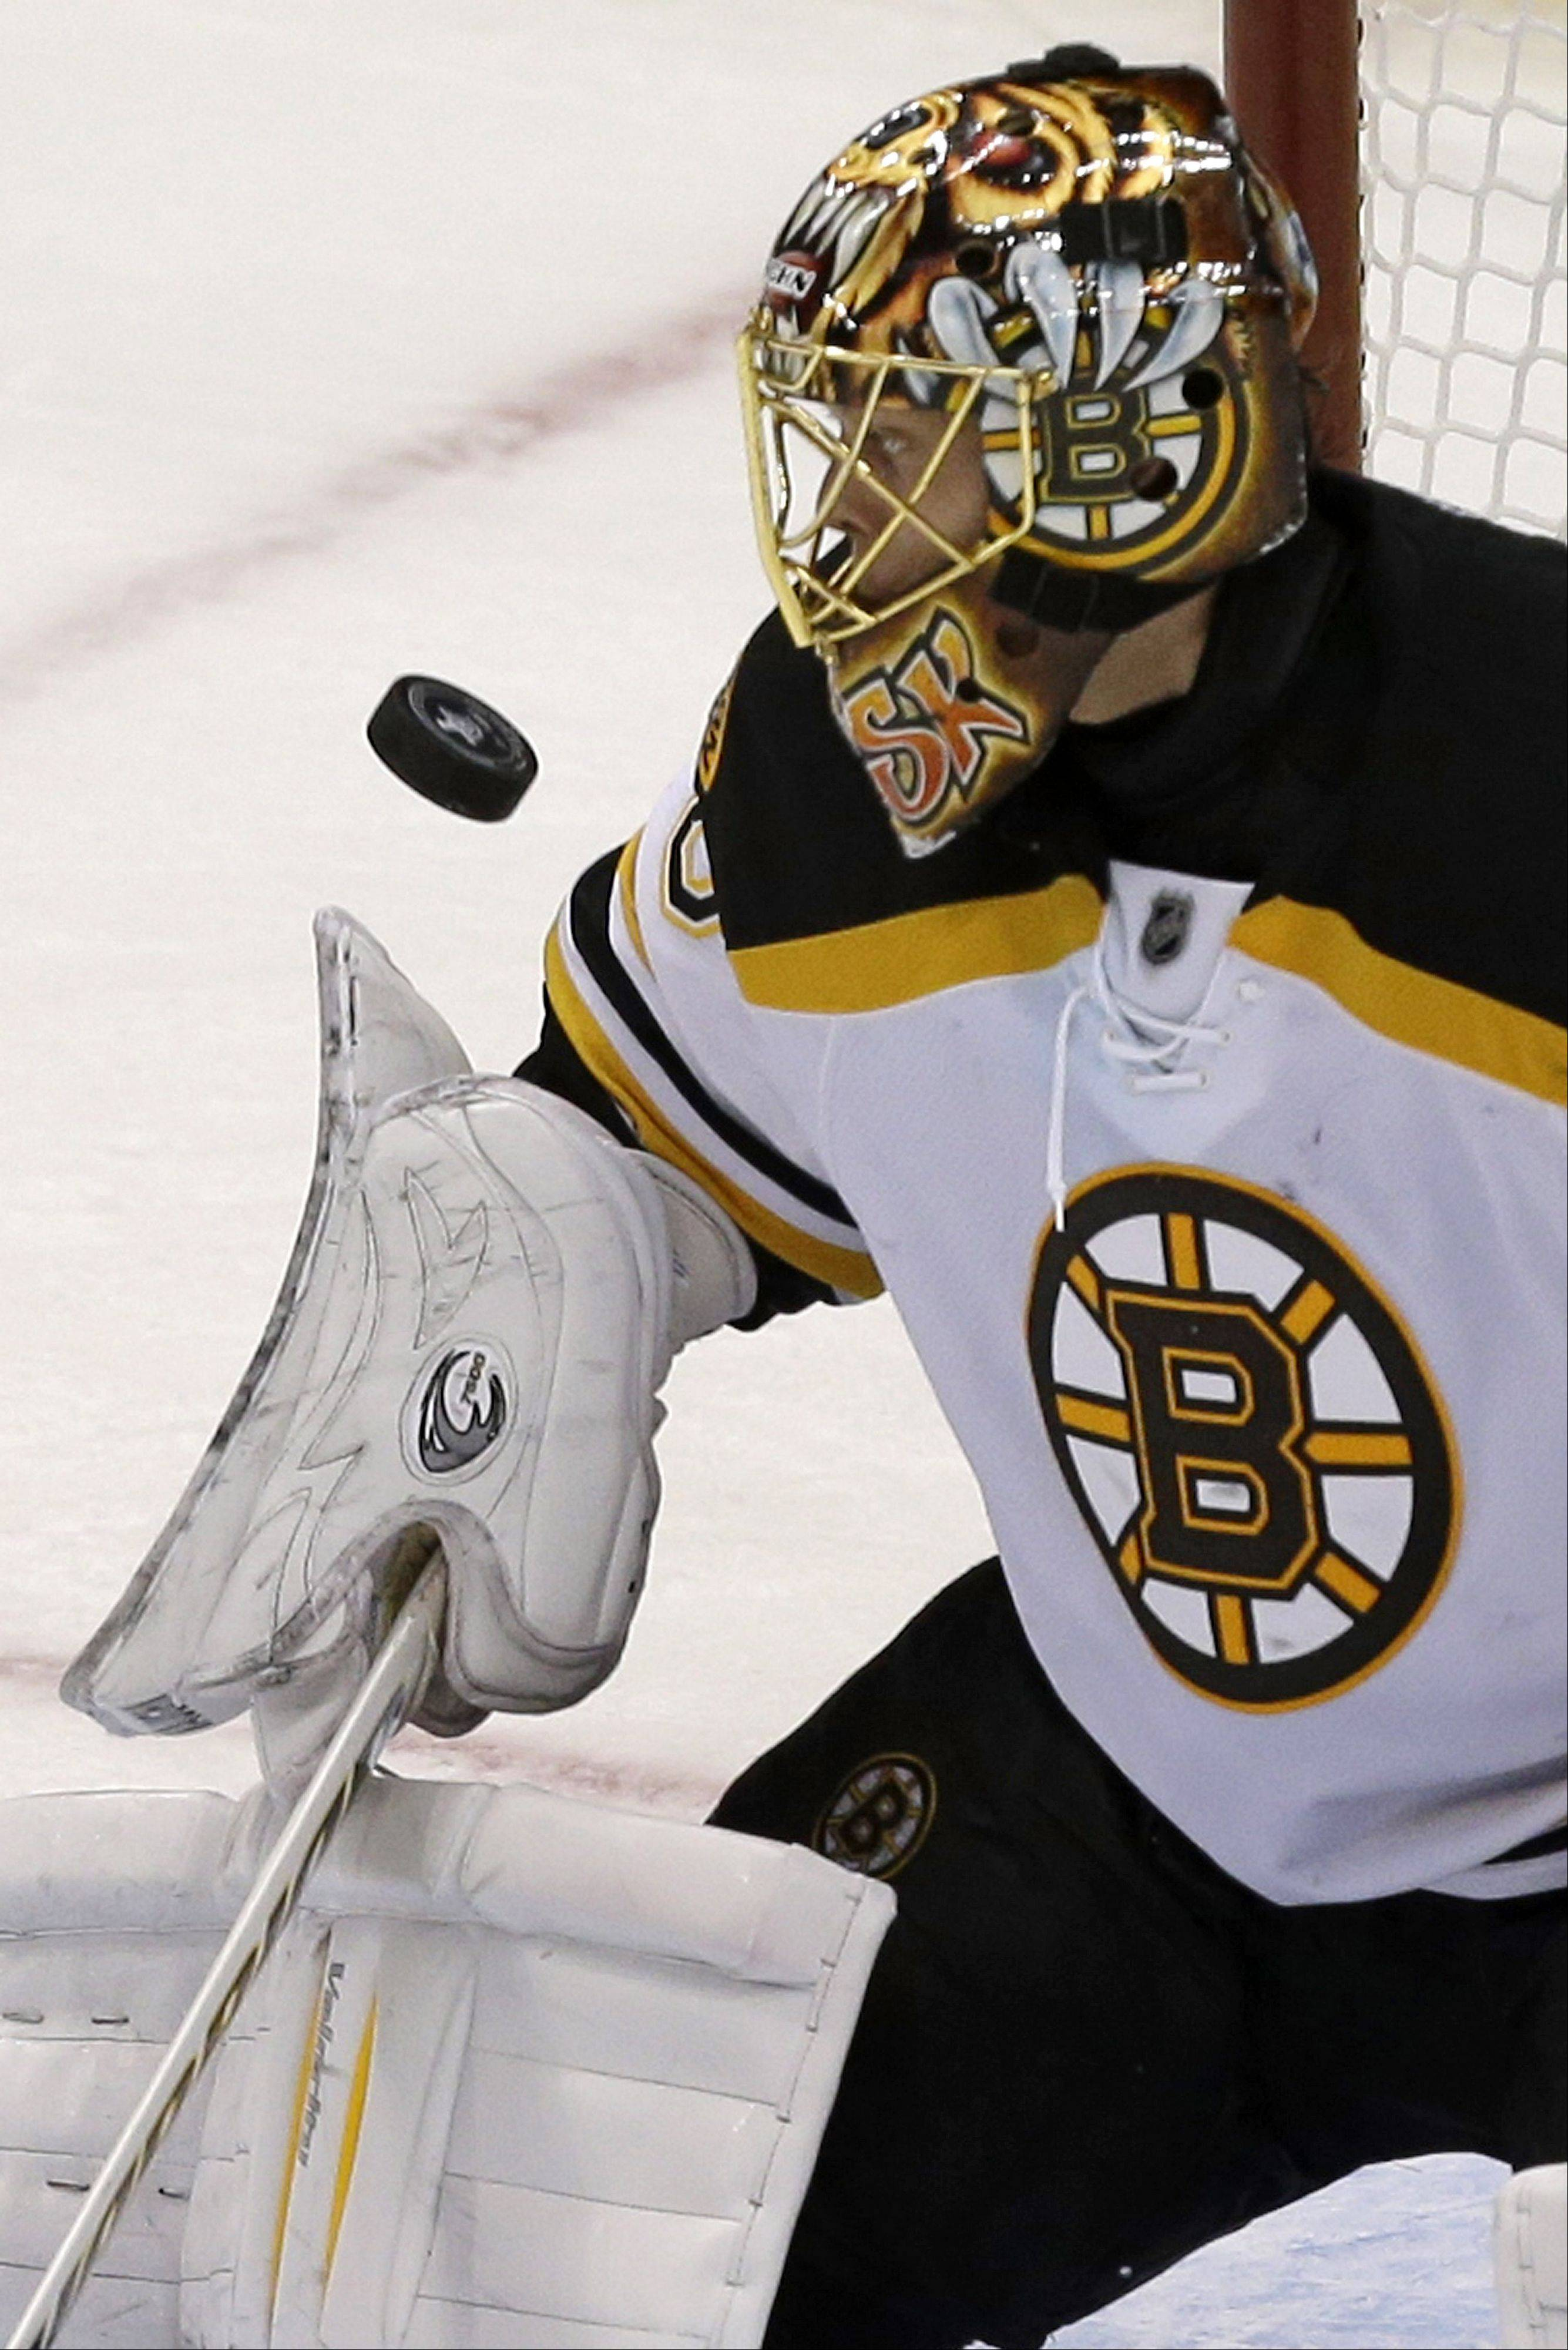 Bruins goalie Tuukka Rask shut down the high-scoring Penguins to help Boston reach the Stanley Cup Finals.